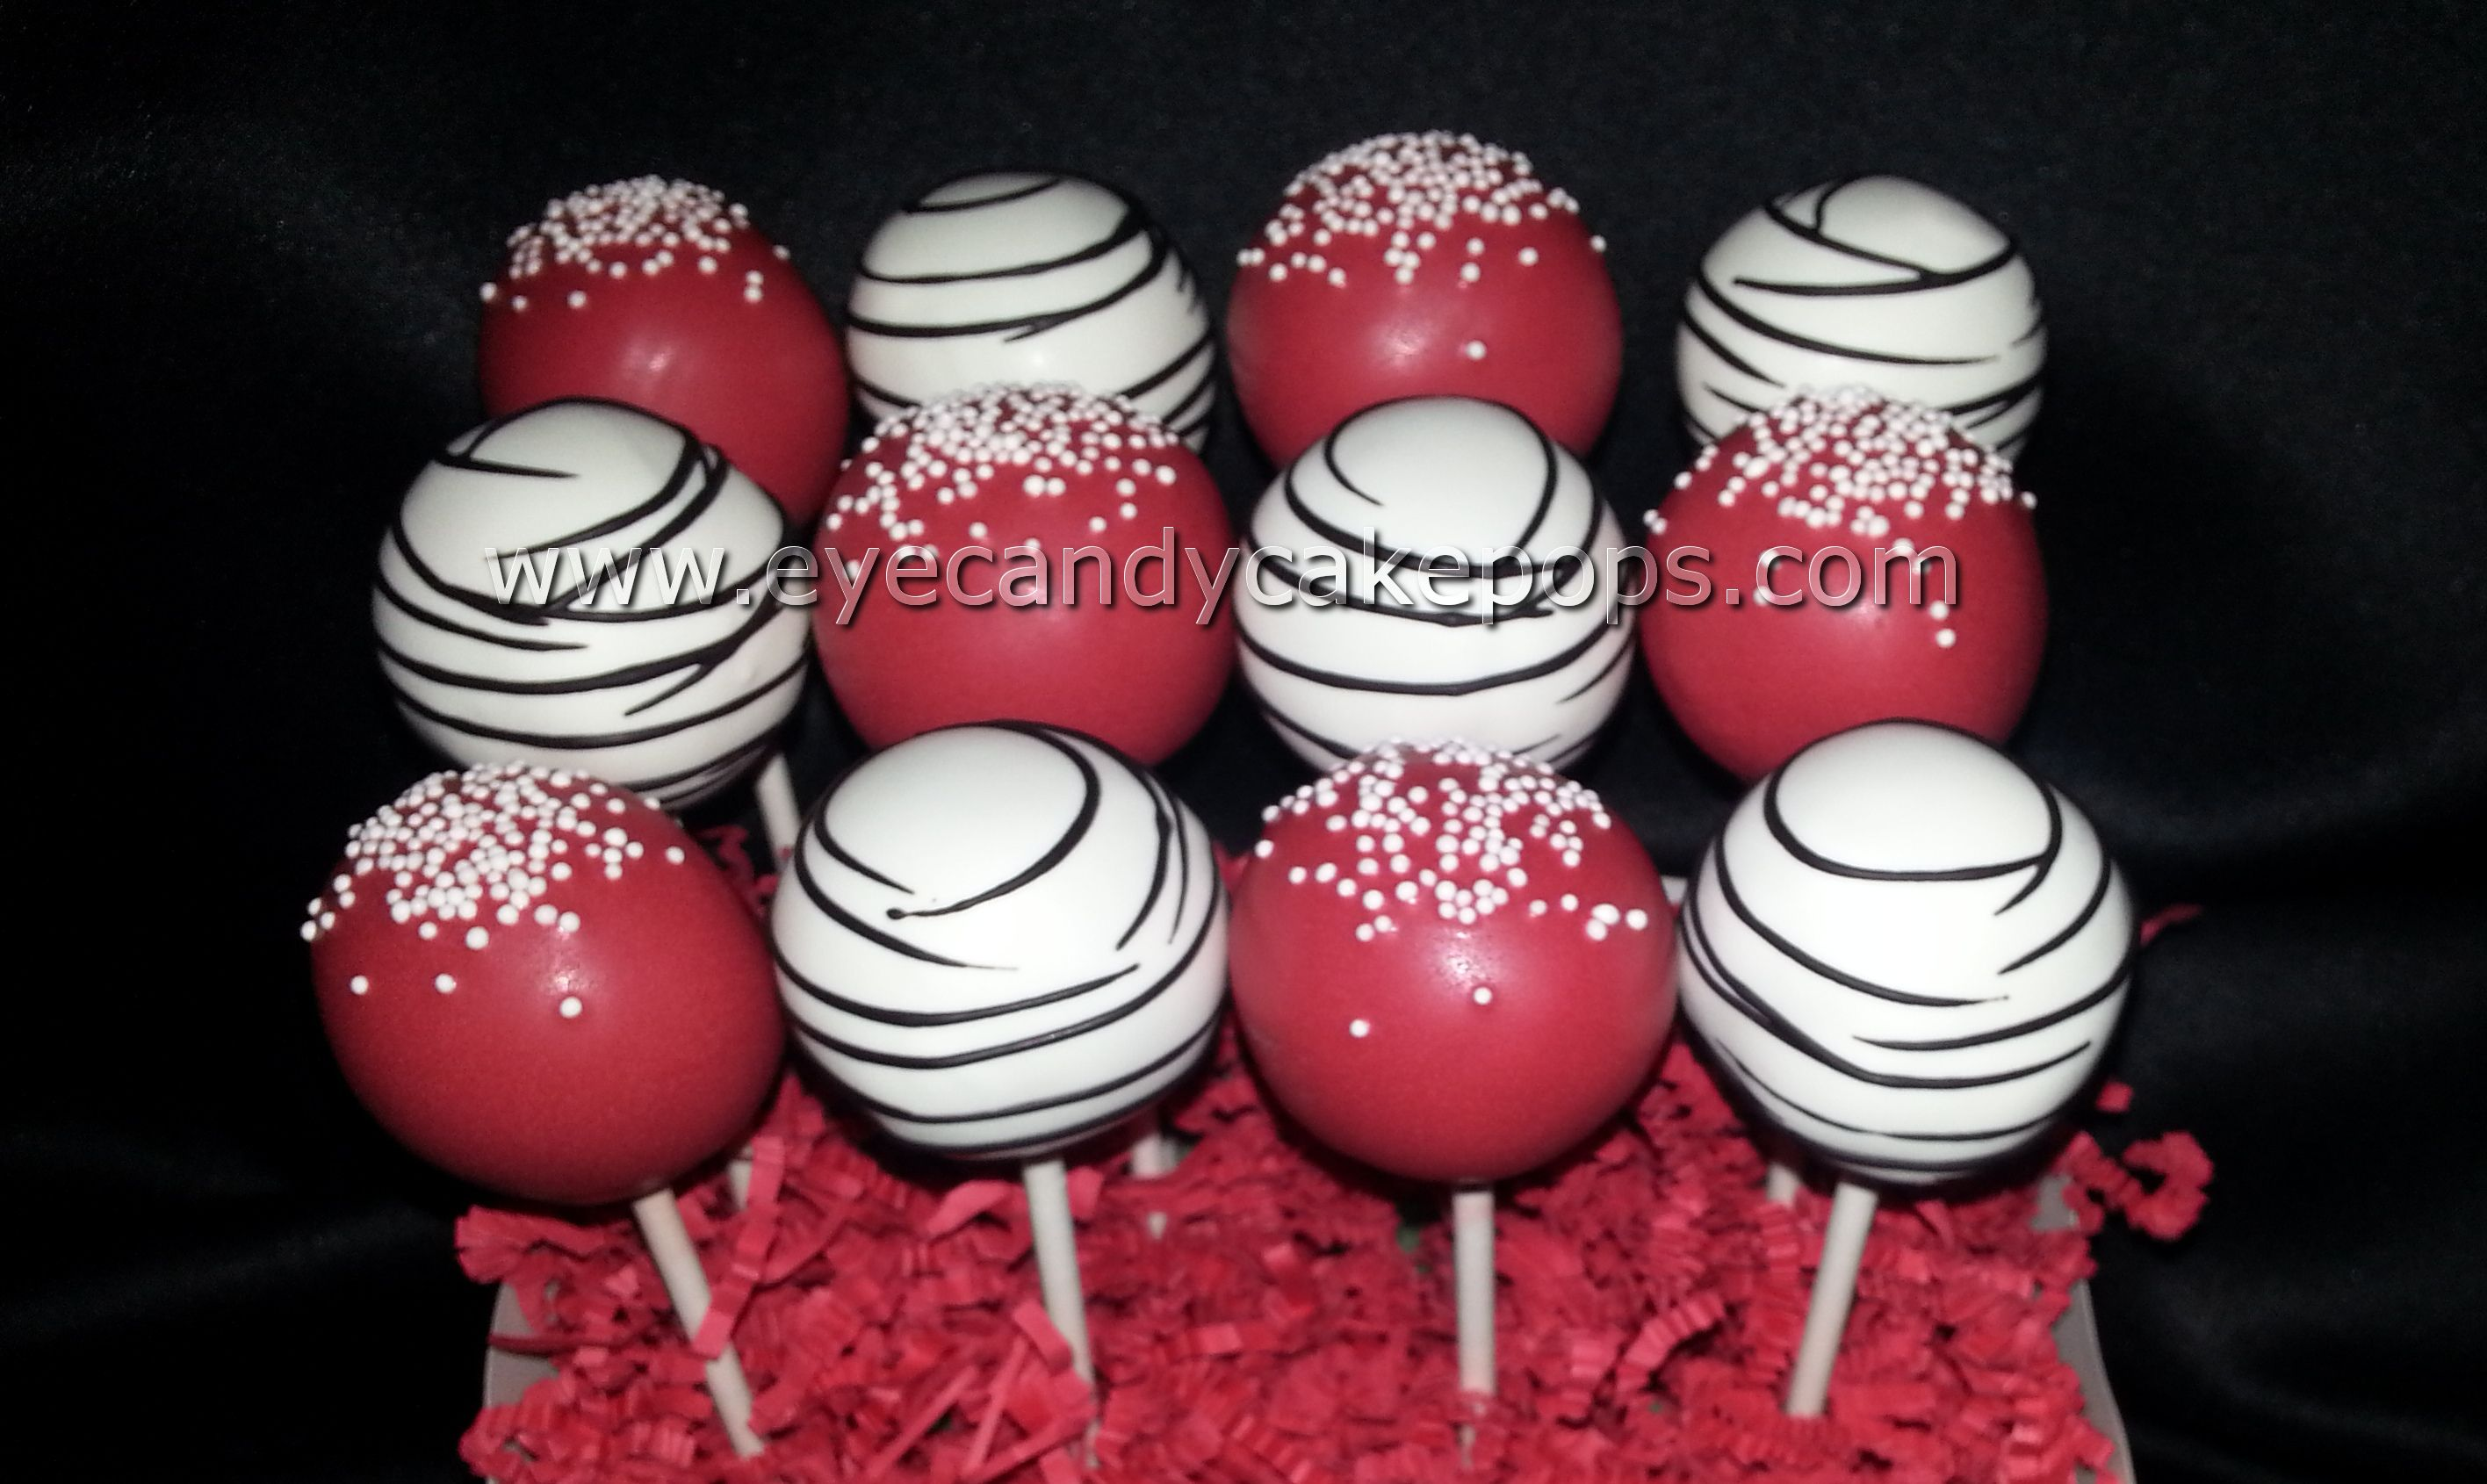 Bakeries In San Diego That Sell Cake Pops